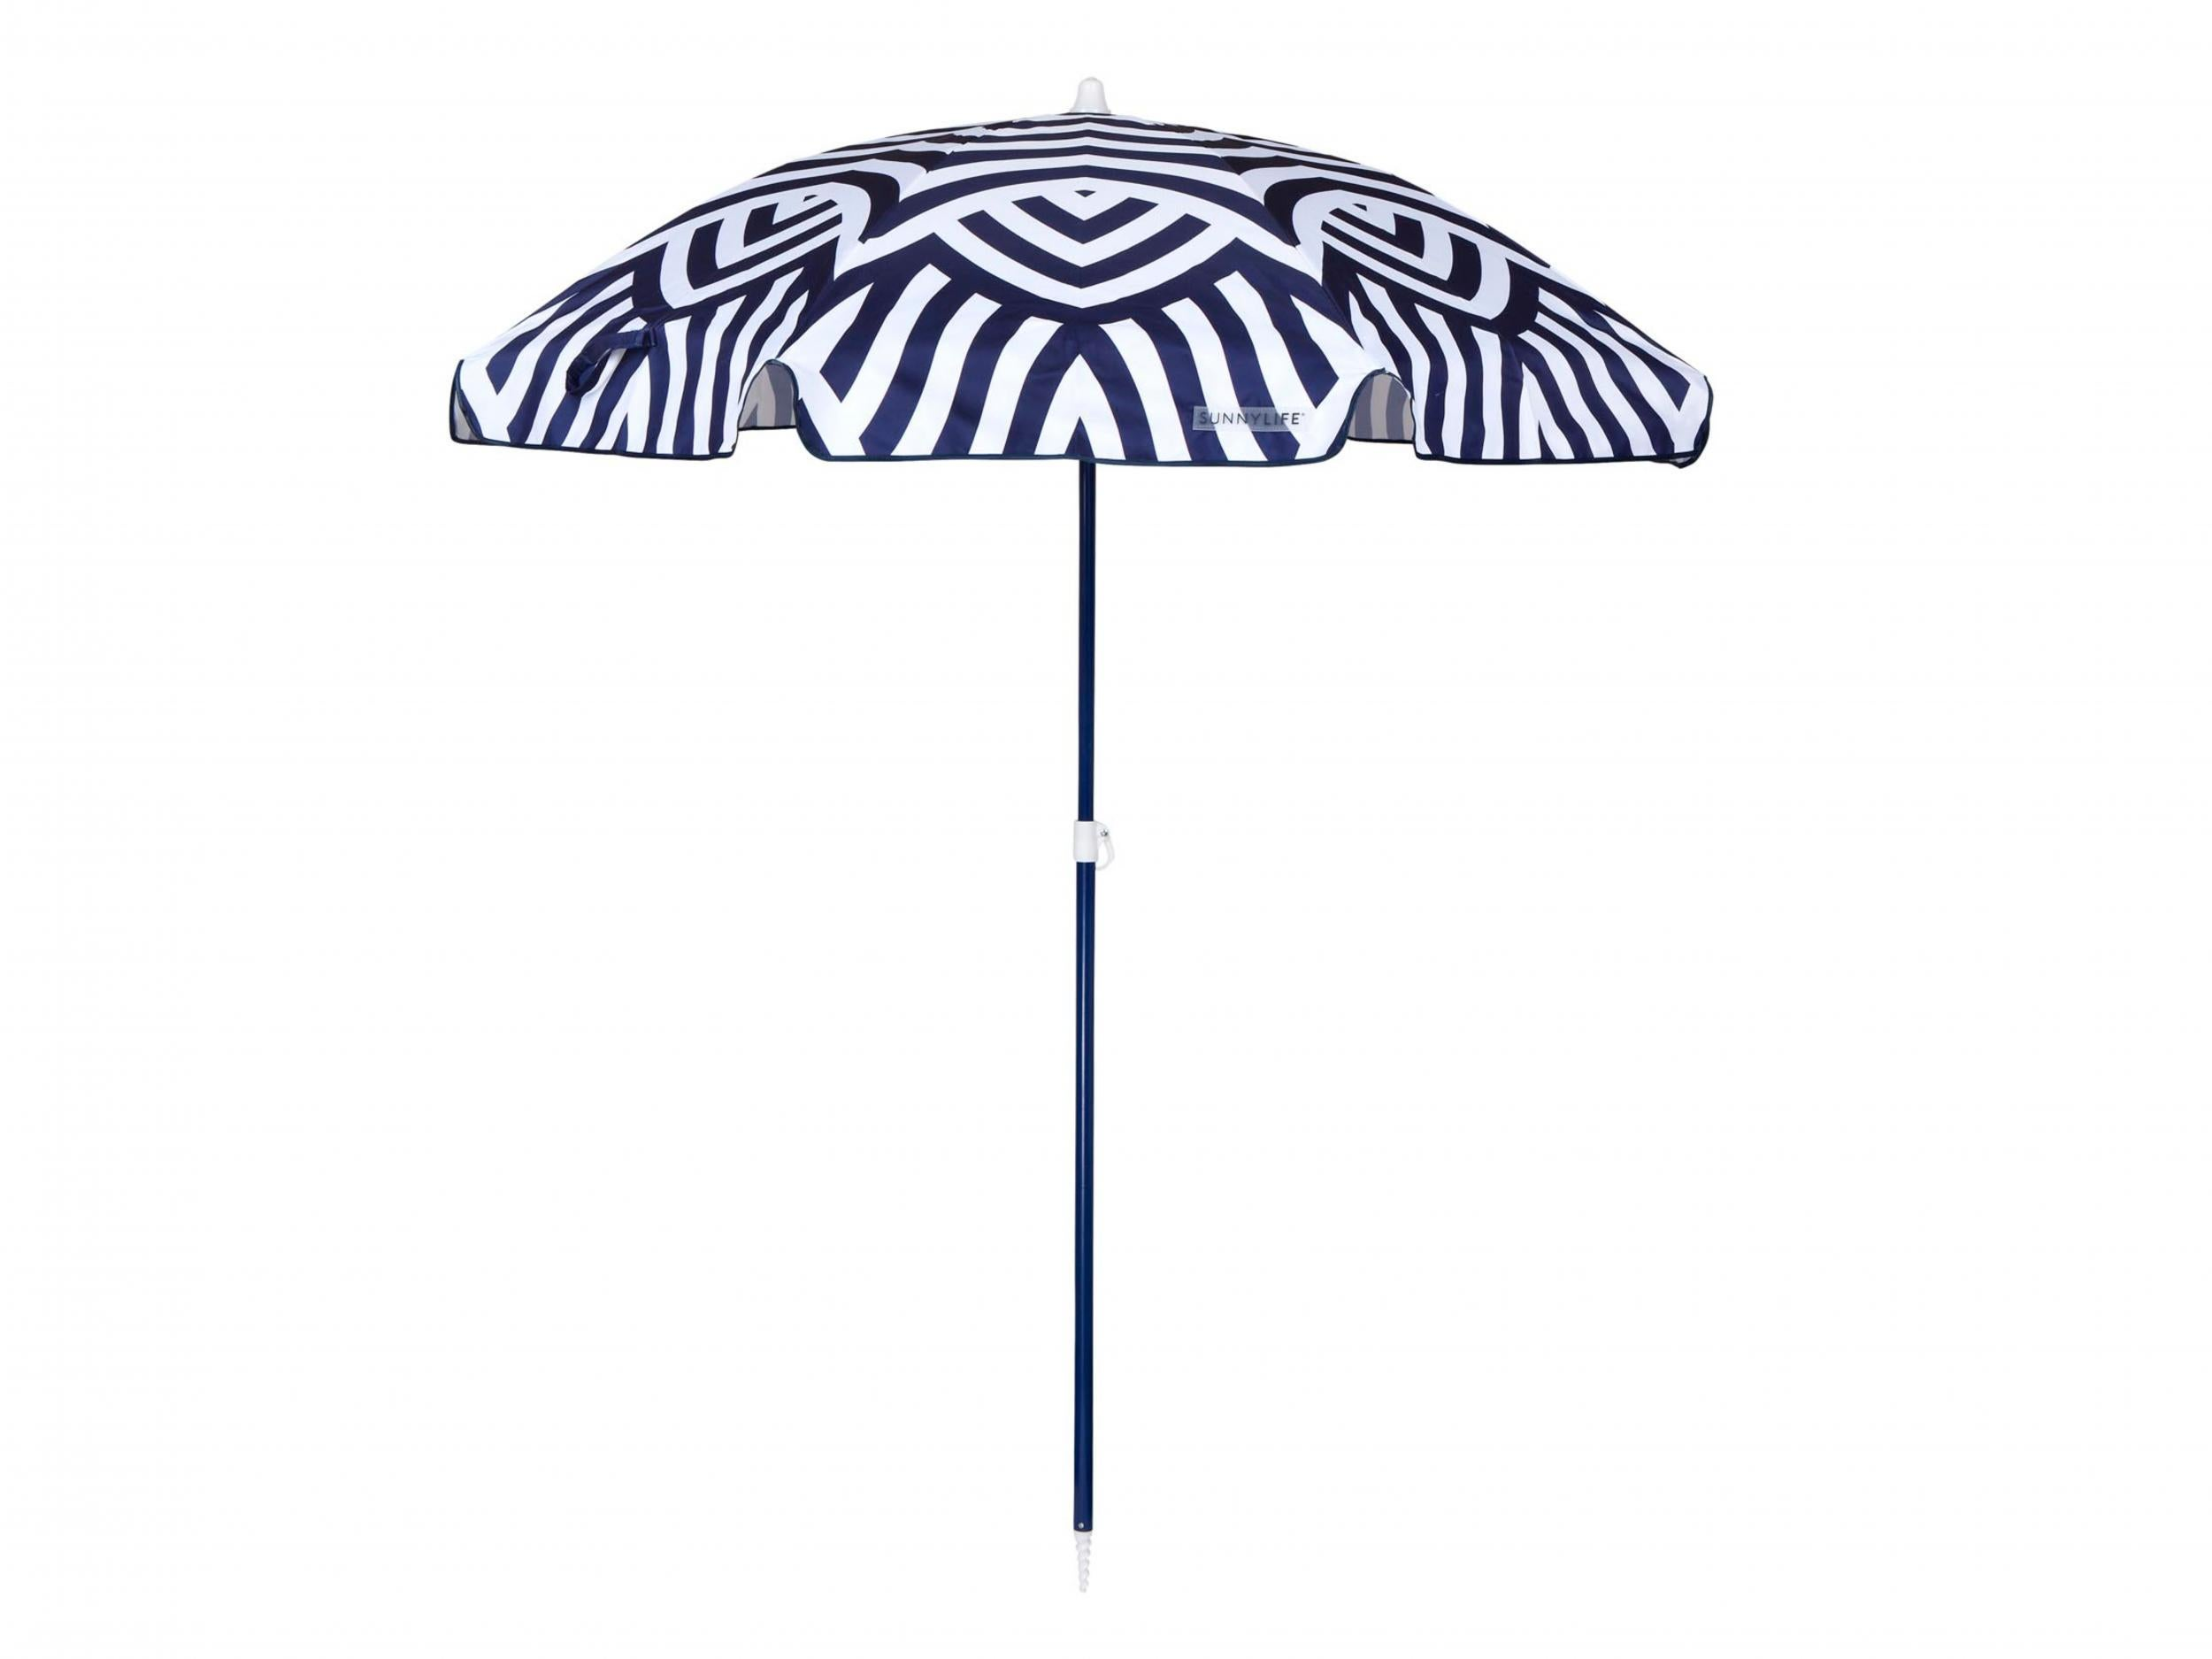 8382c63c45 Best garden parasol: Choose from models that are adjustable, stylish ...